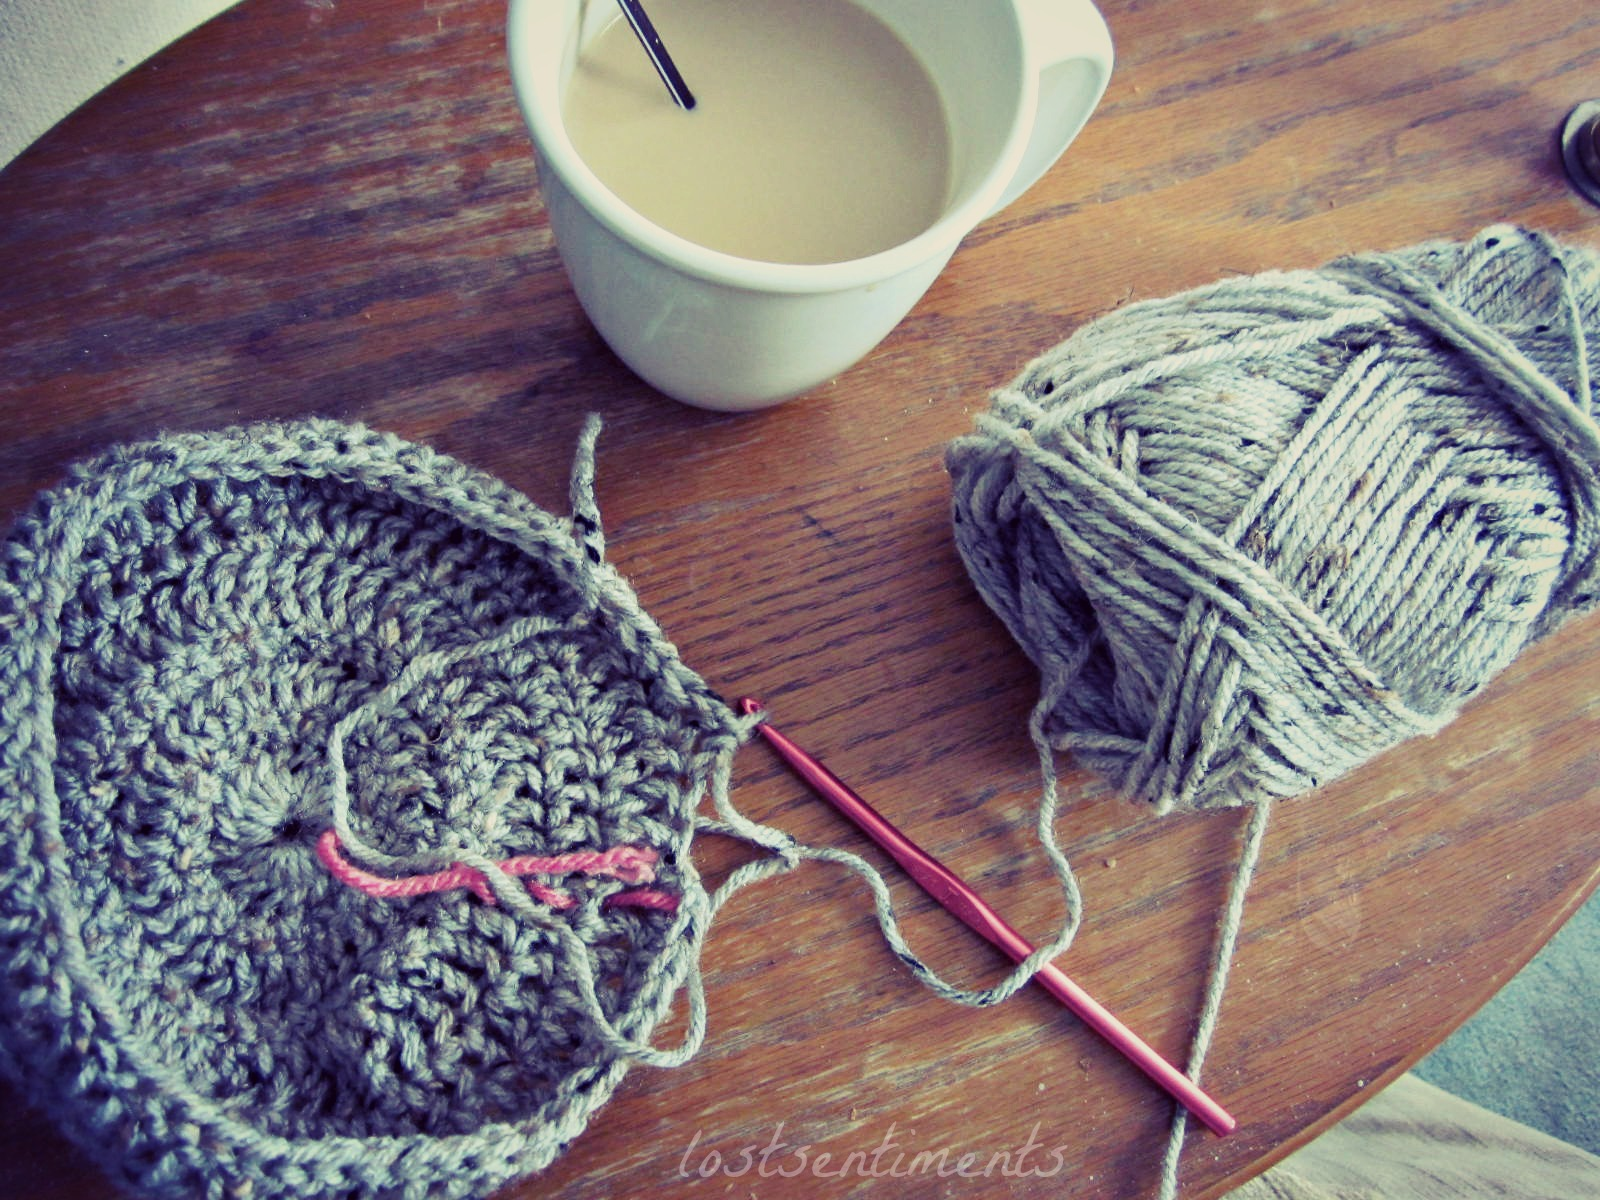 lostsentiments: What does a Baby Cocoon, a Granny Square Blanket & a ...